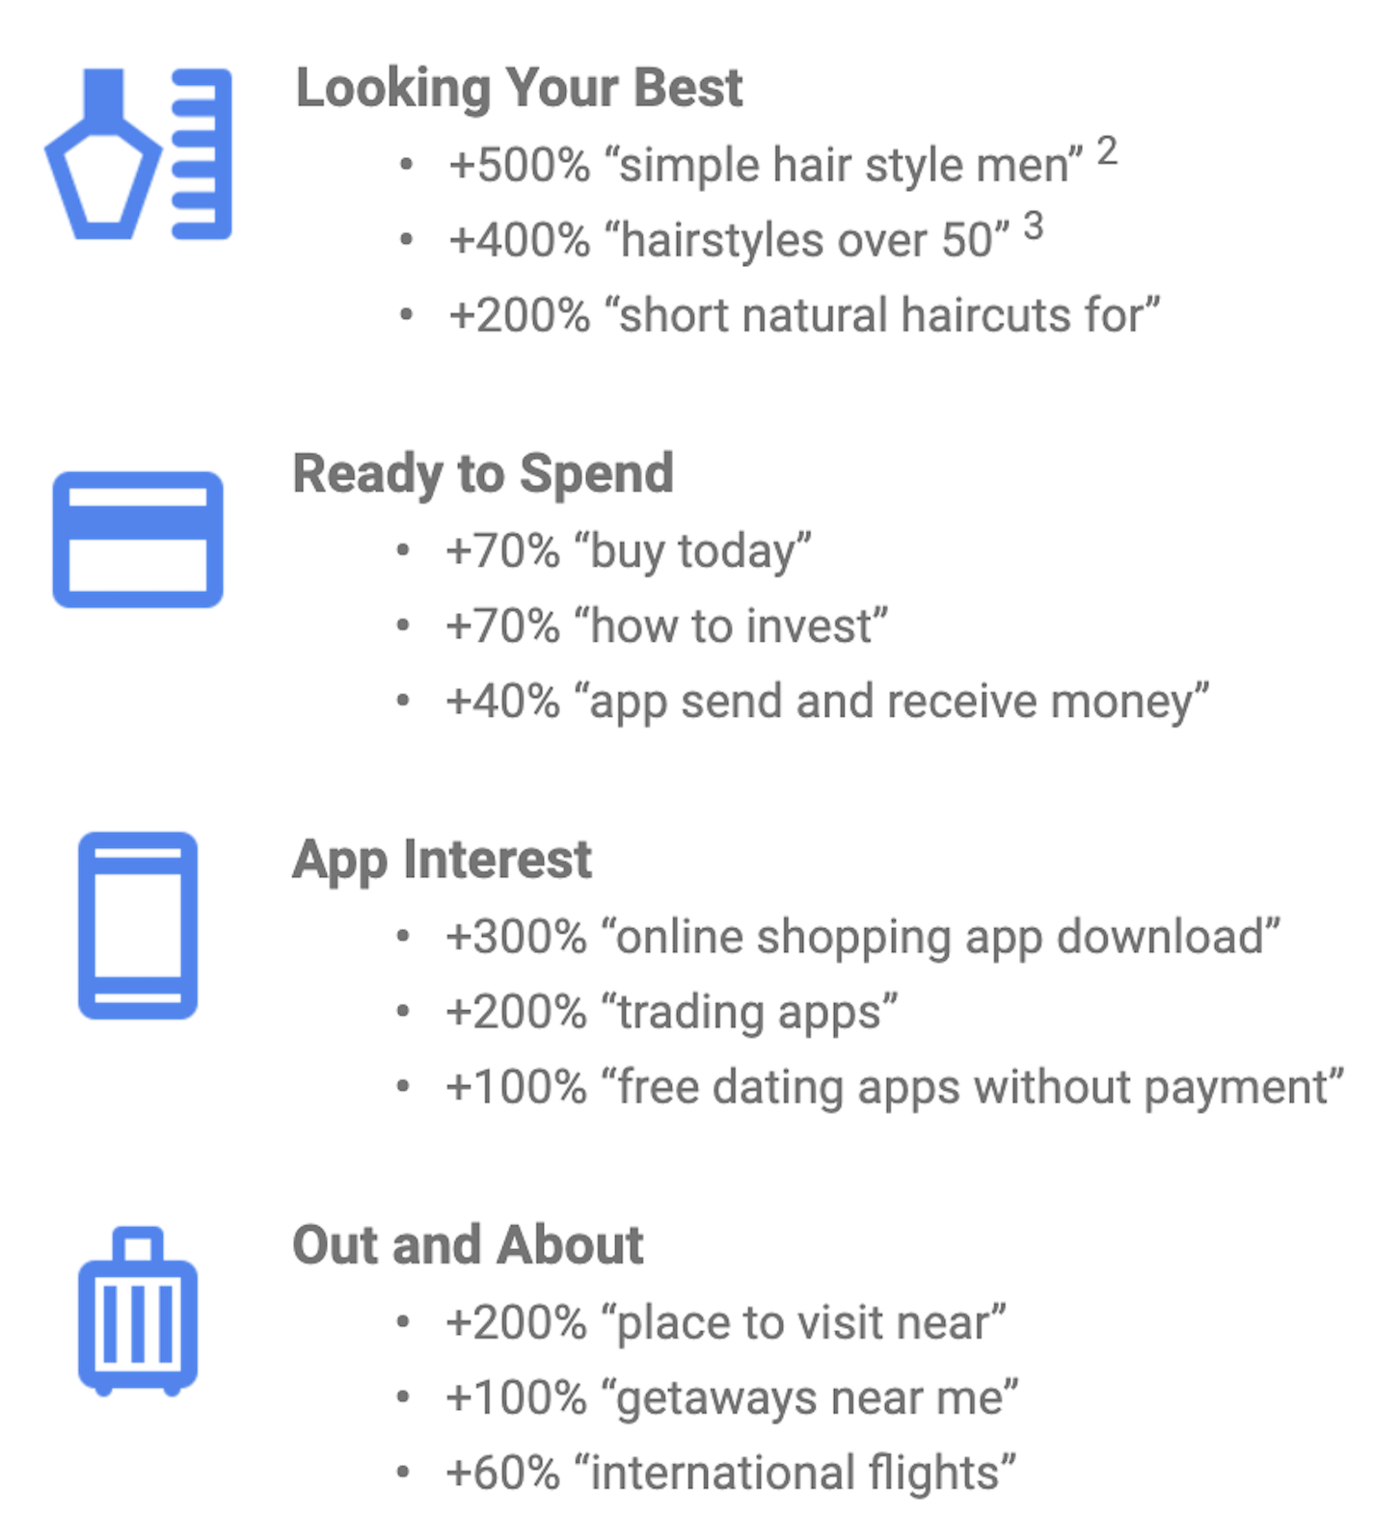 Top global Google searches: looking your best; ready to spend; app interest; out and about